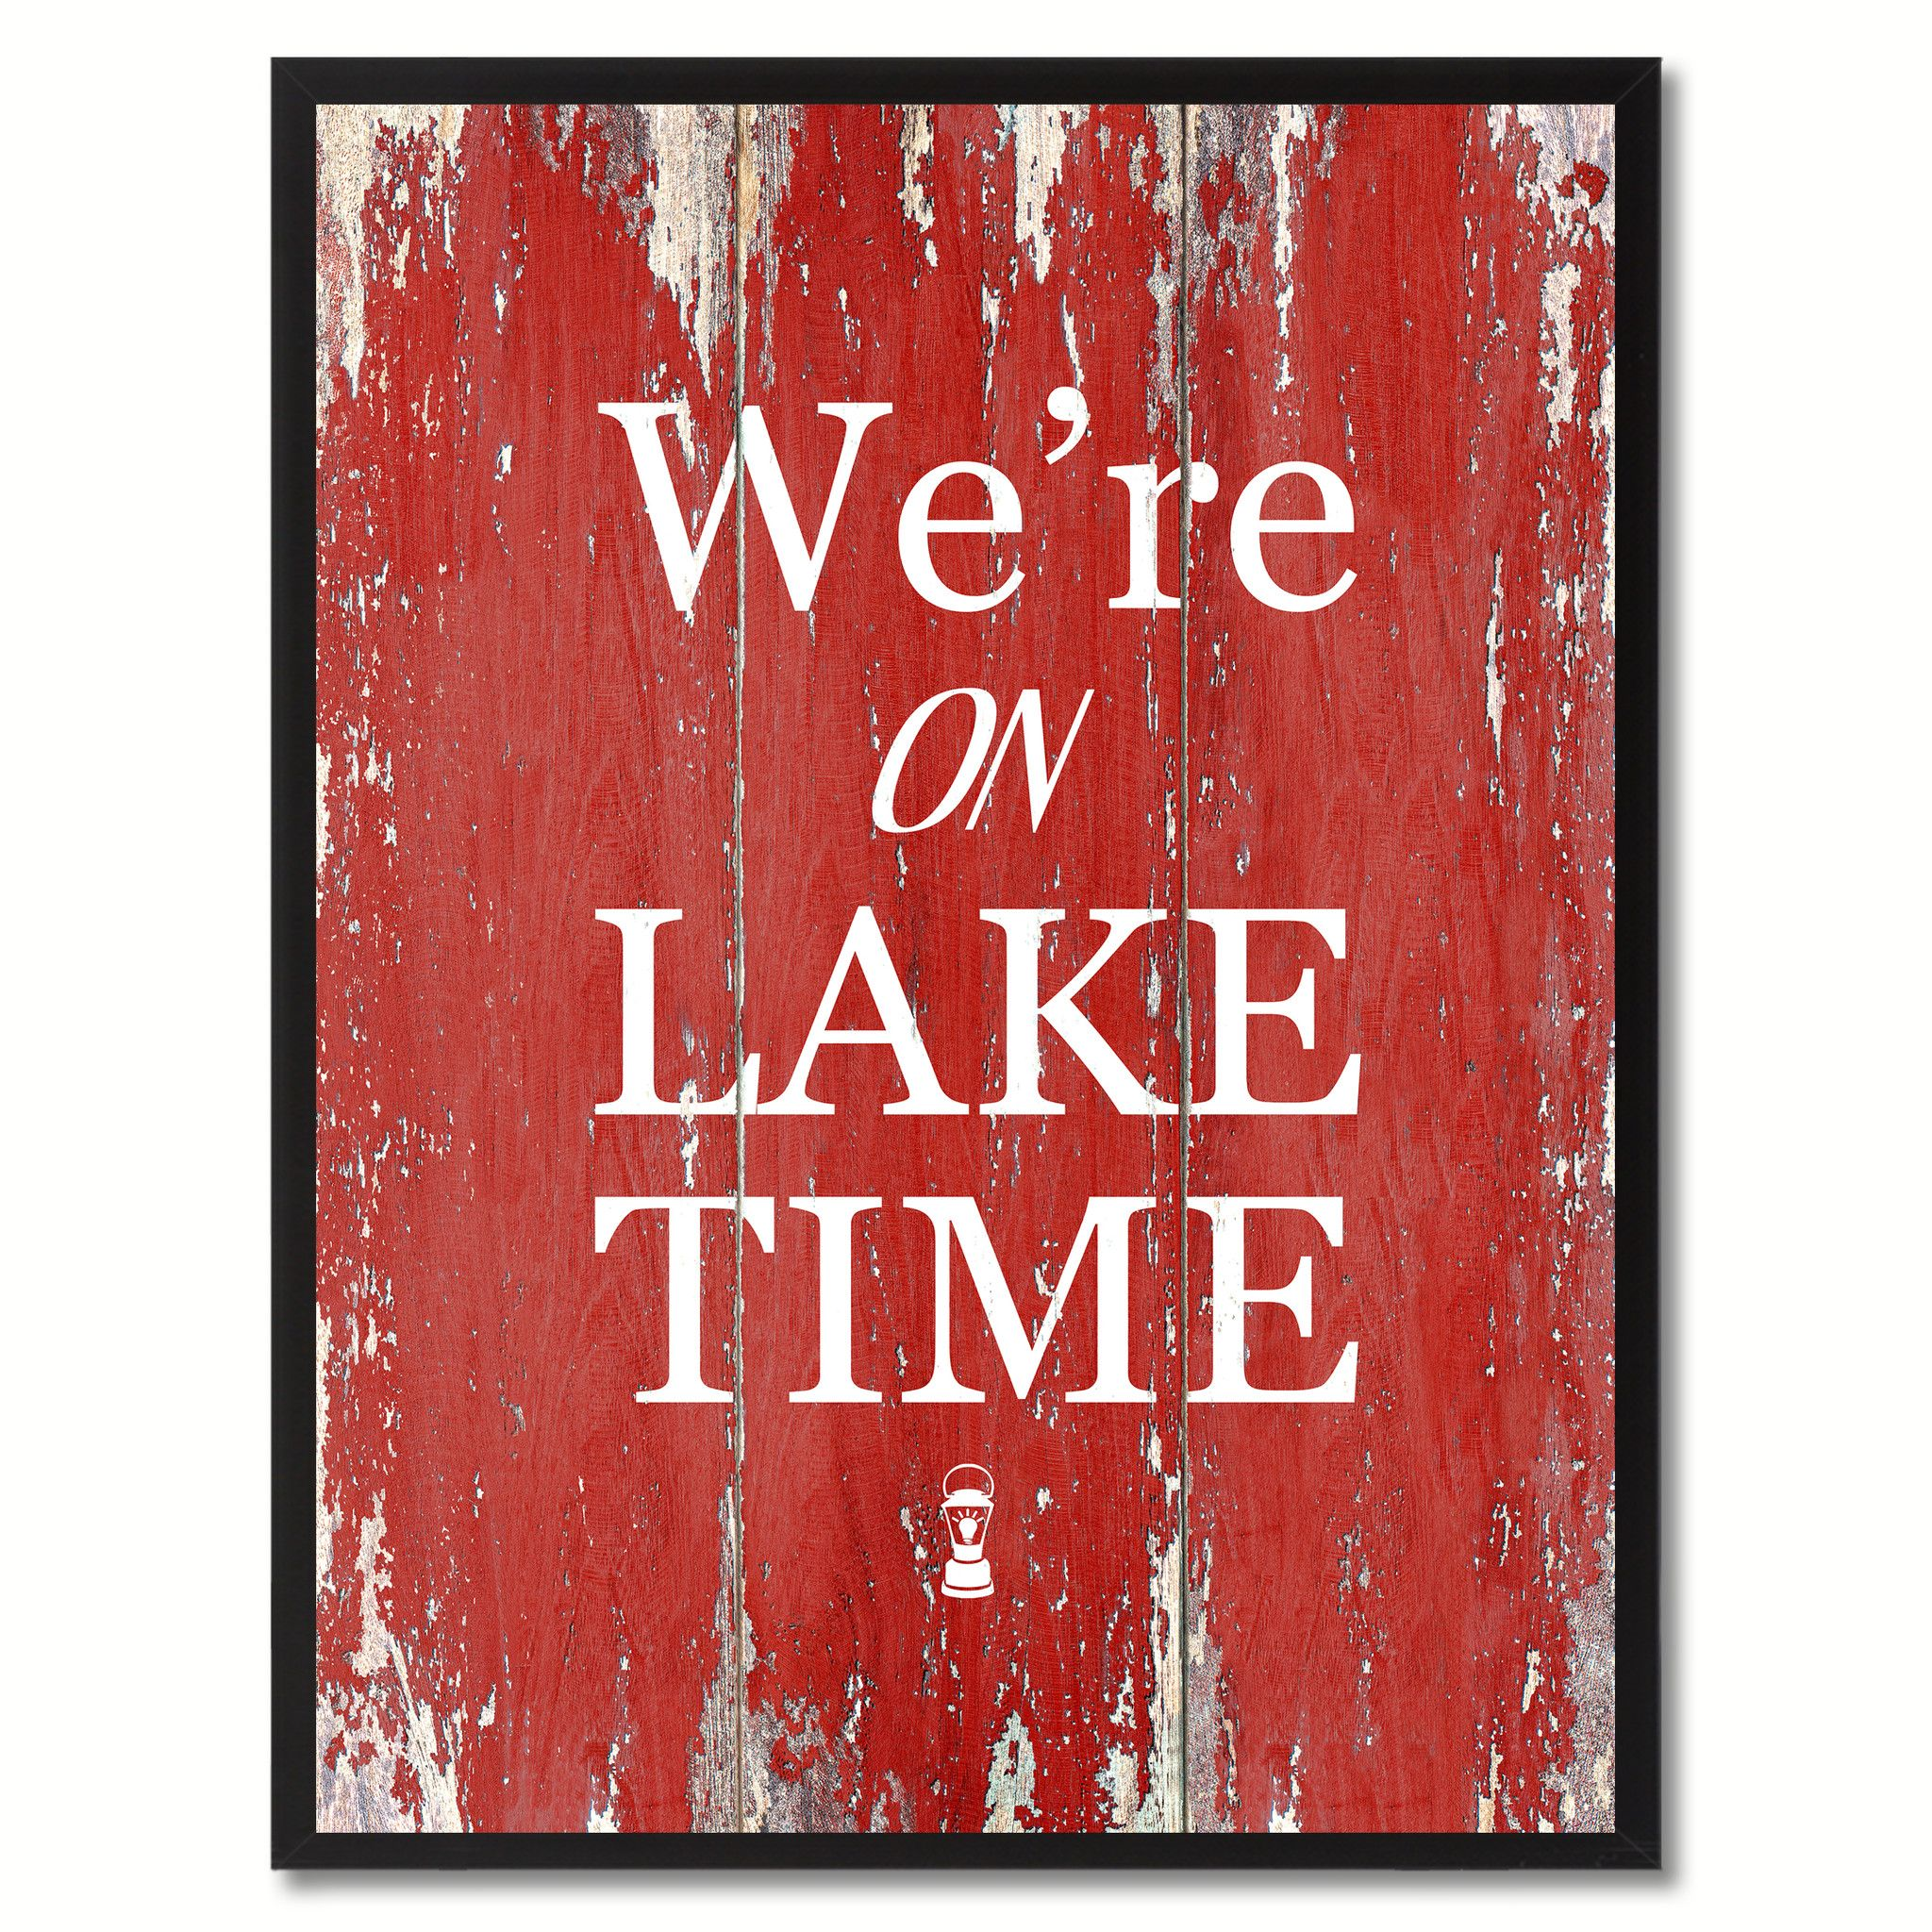 We Re On Lake Time Saying Canvas Print Black Picture Frame Home Decor Wall Art Gifts Wall Art Gift Home Decor Wall Art Lake Decor